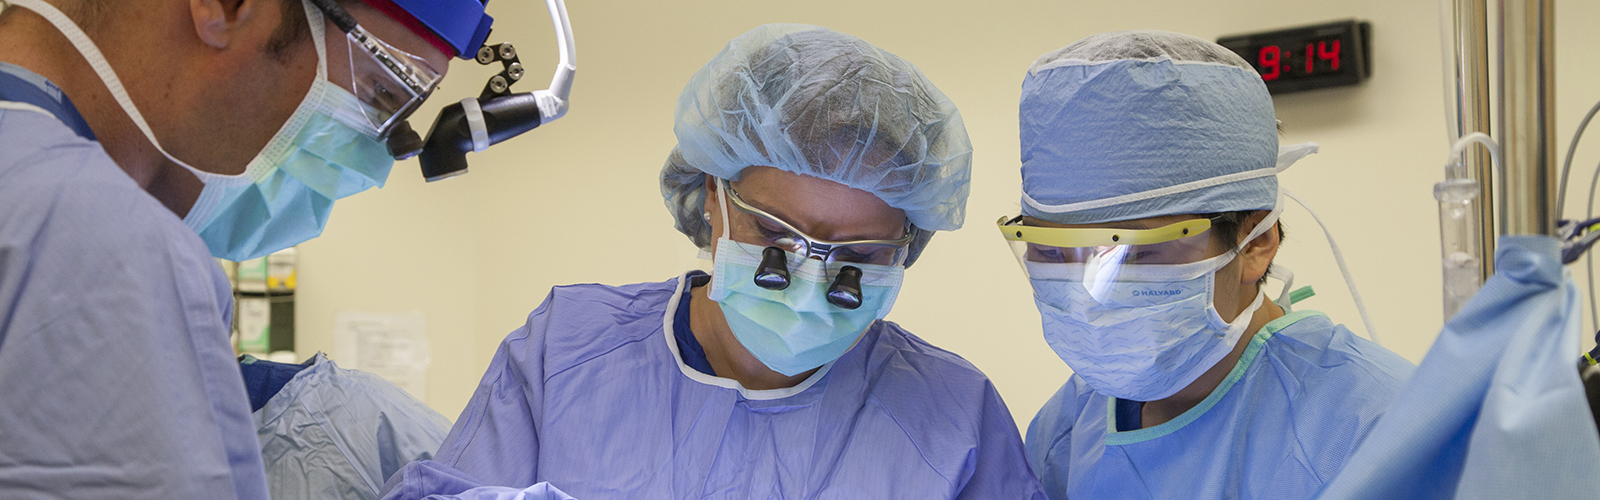 Education & Training - Department of Surgery